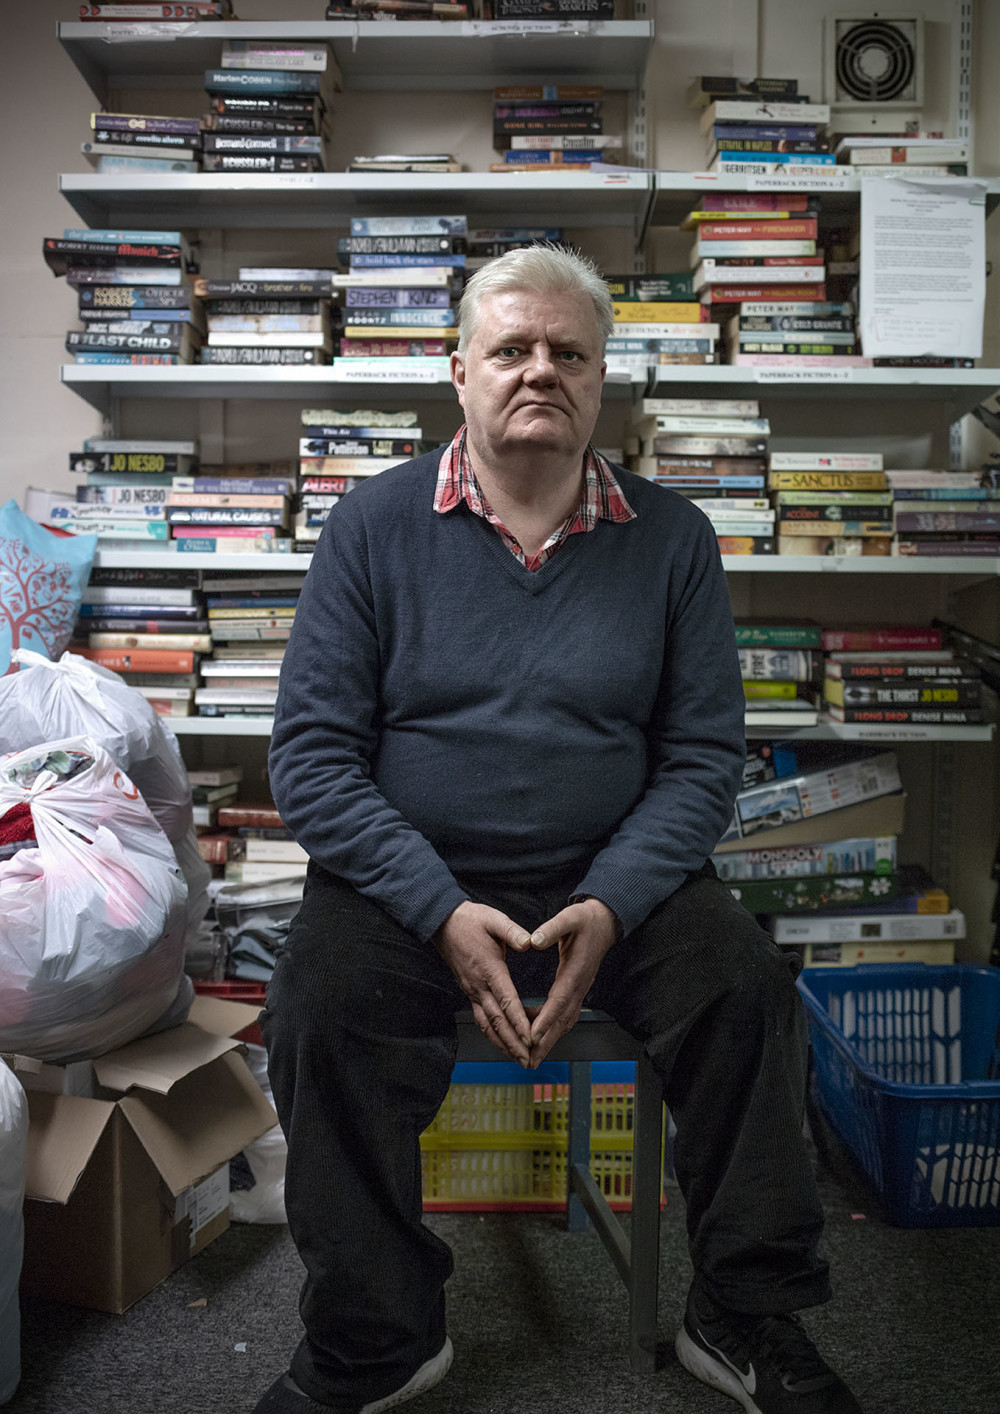 Gerry, a volunteer at a Shelter Scotland shop. Photographed for Shelter Scotland's 50th anniversary by Melissa Mitchell.